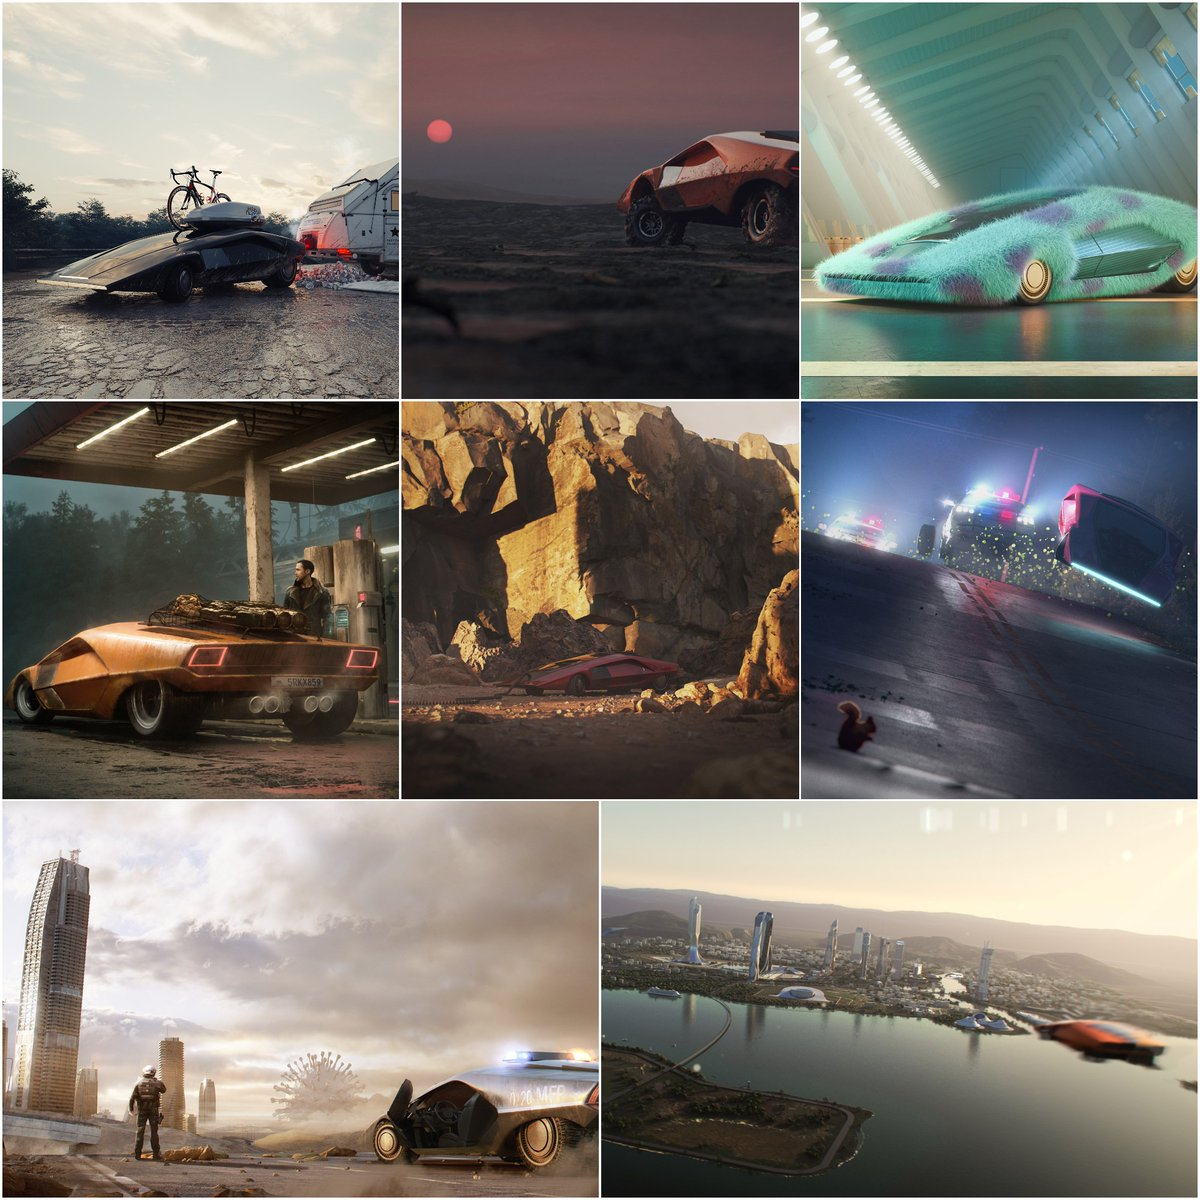 *Contests.  . TOP20 | 2020 | Lancia Stratos. . Congratulations to all the Artists & Thank you for your participation! . #vwartclub #contests #automotive #3dart #visualization #rendering #cinema4d #3dsmax #coronarenderer #vray #octanerenderer #photoshop